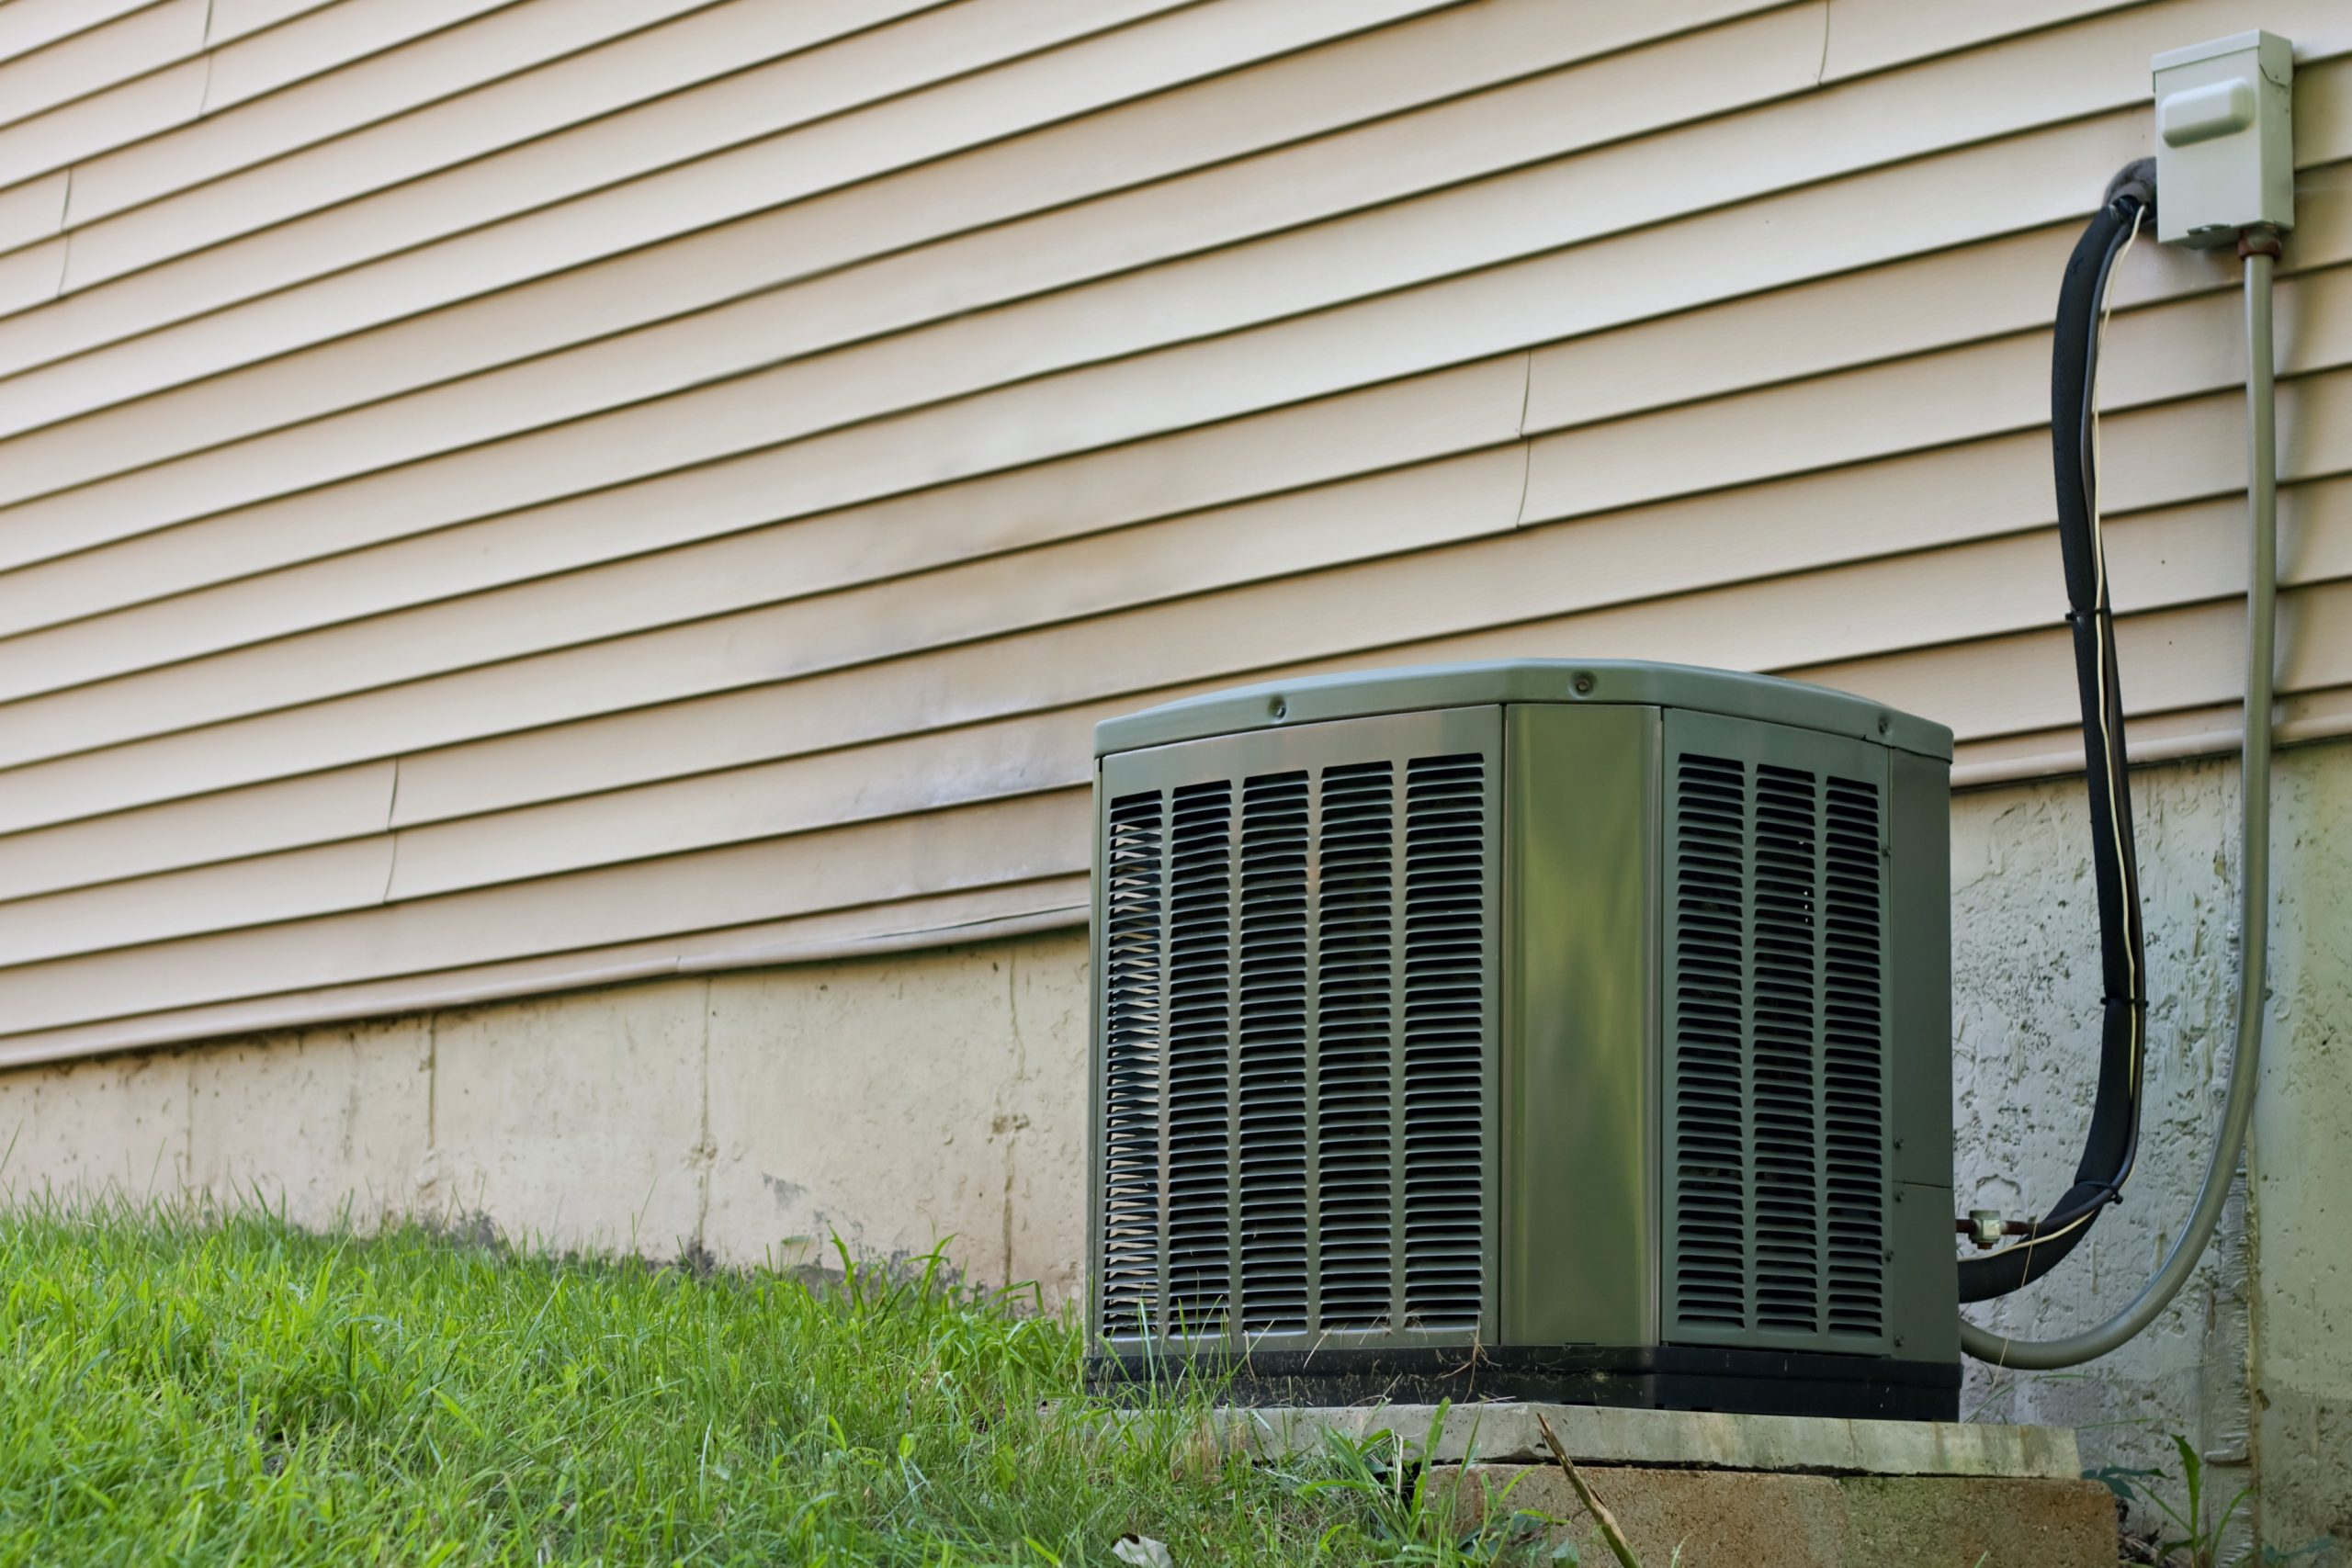 Buyer's Guide: Selecting a Residential Air Conditioner